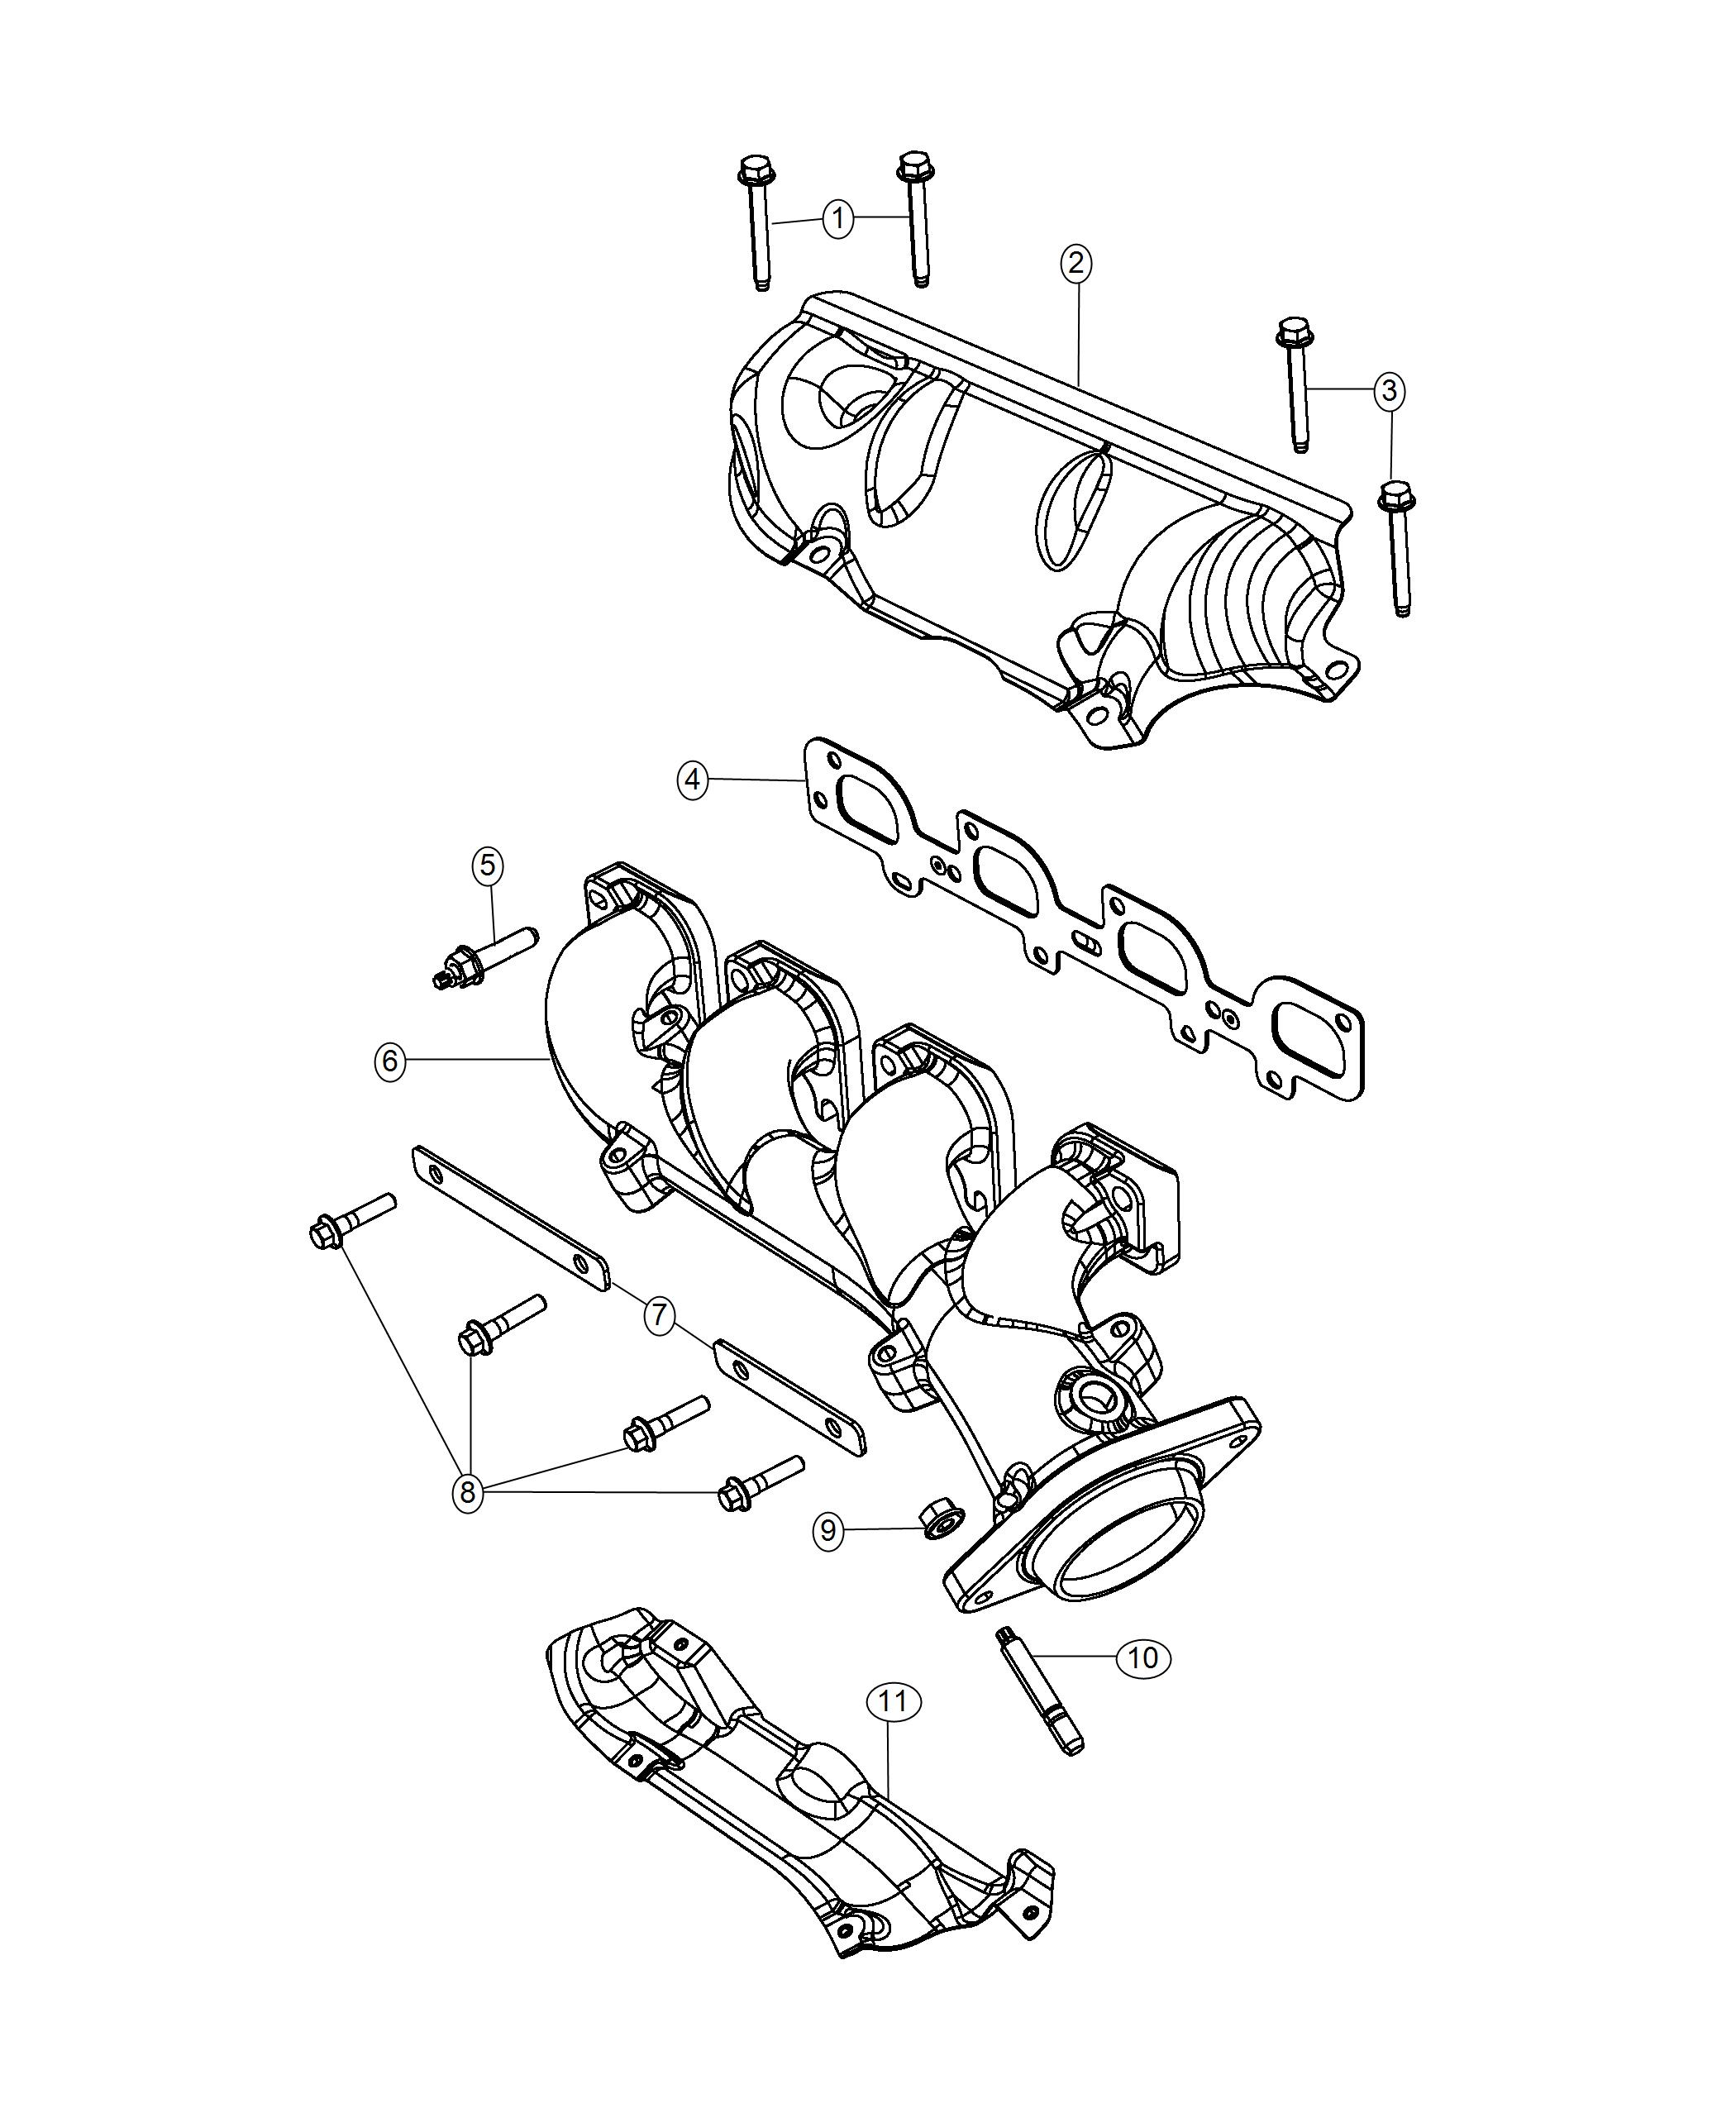 Jeep Grand Cherokee Manifold Exhaust Left Side